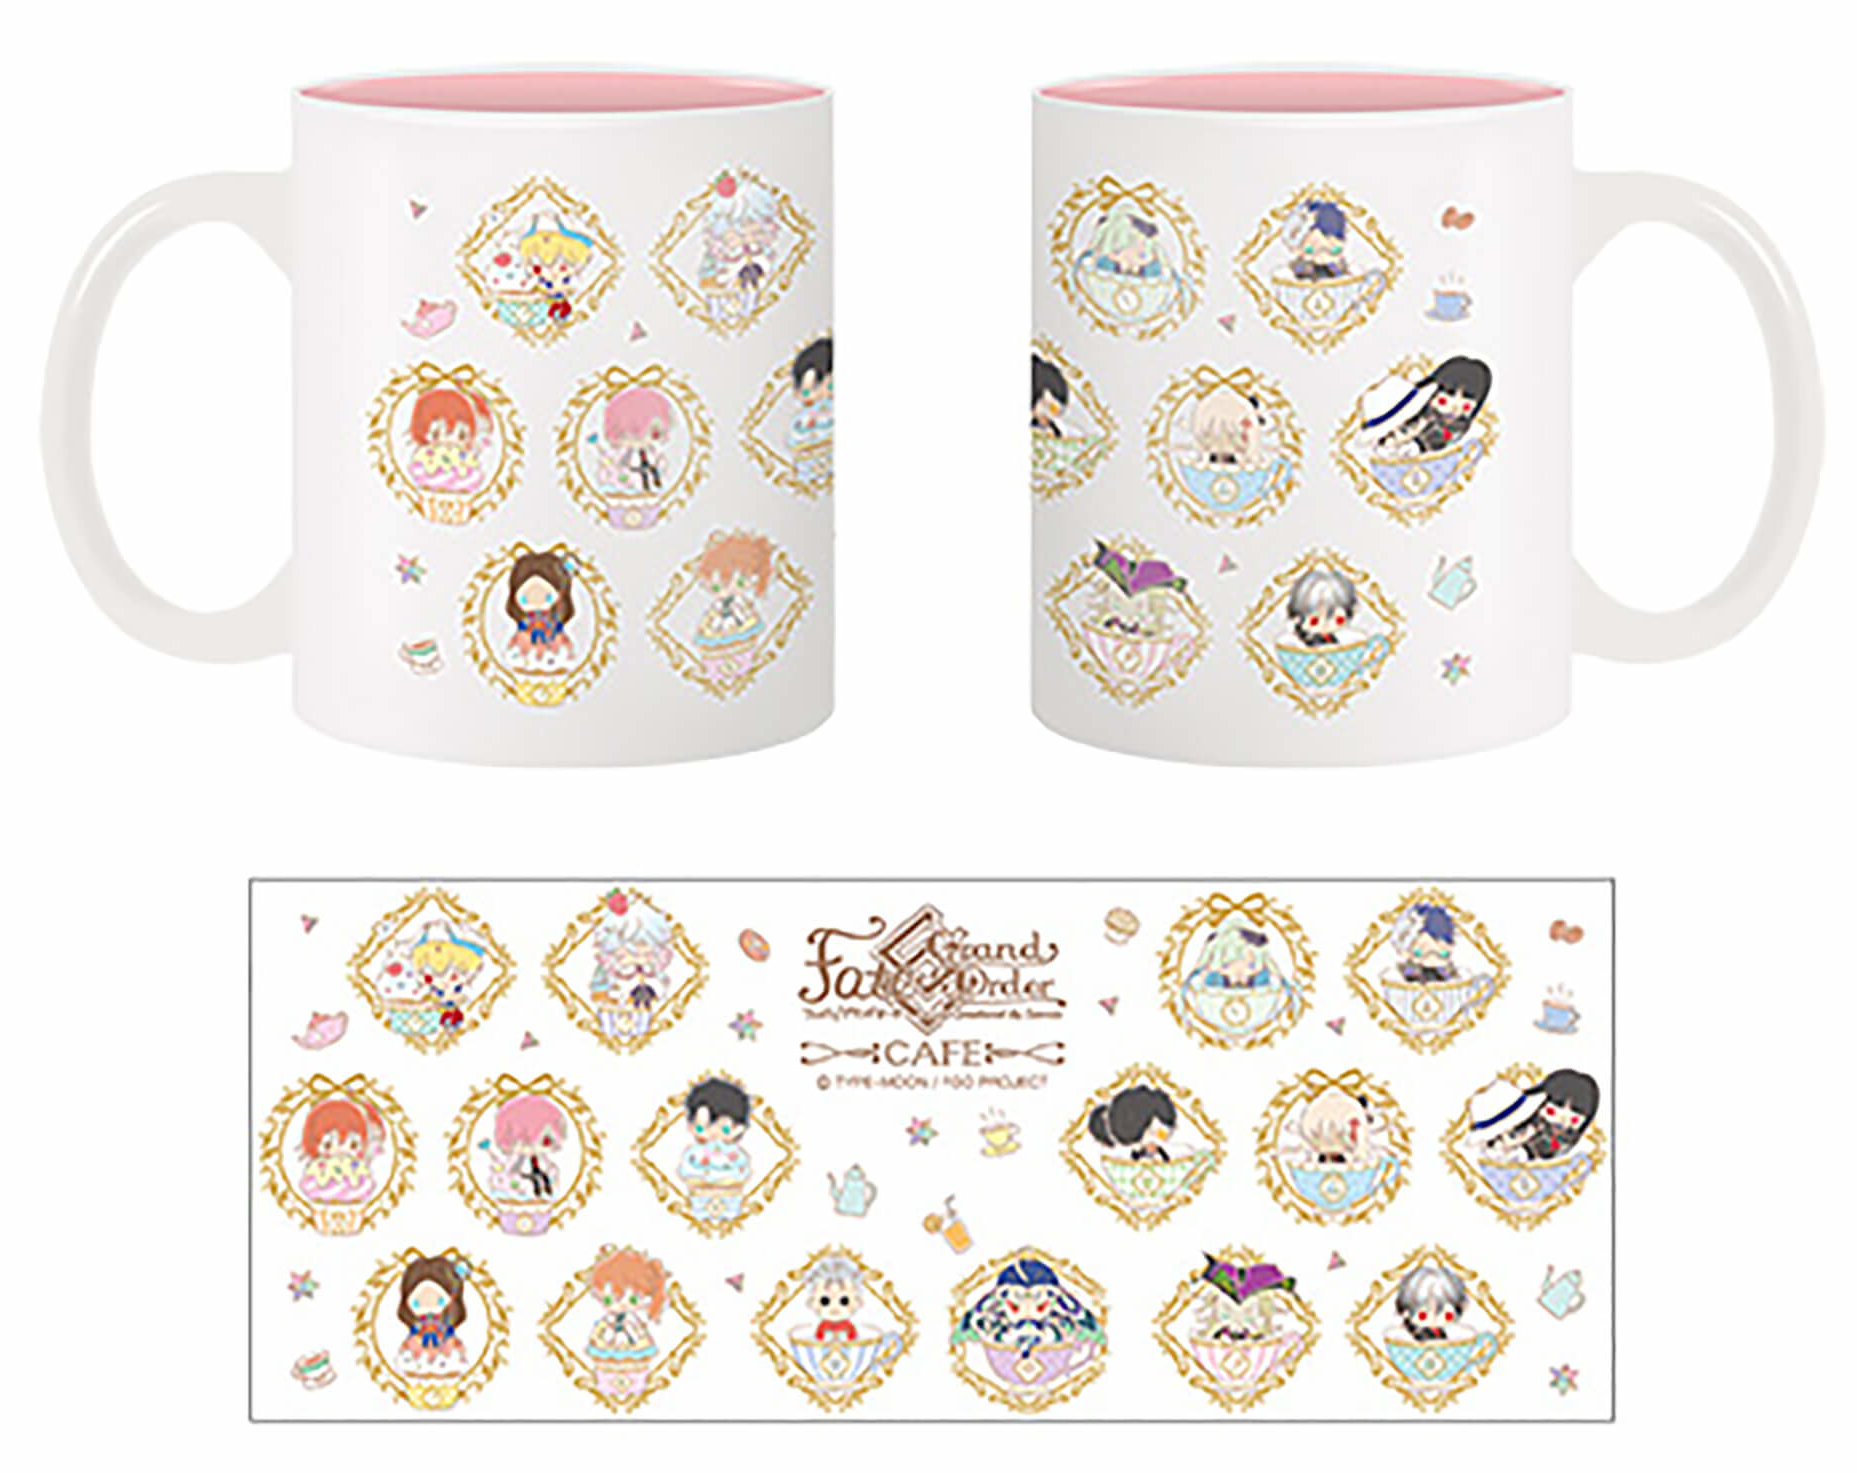 Fate/Grand Order Design produced by Sanrio カフェのマグカップ